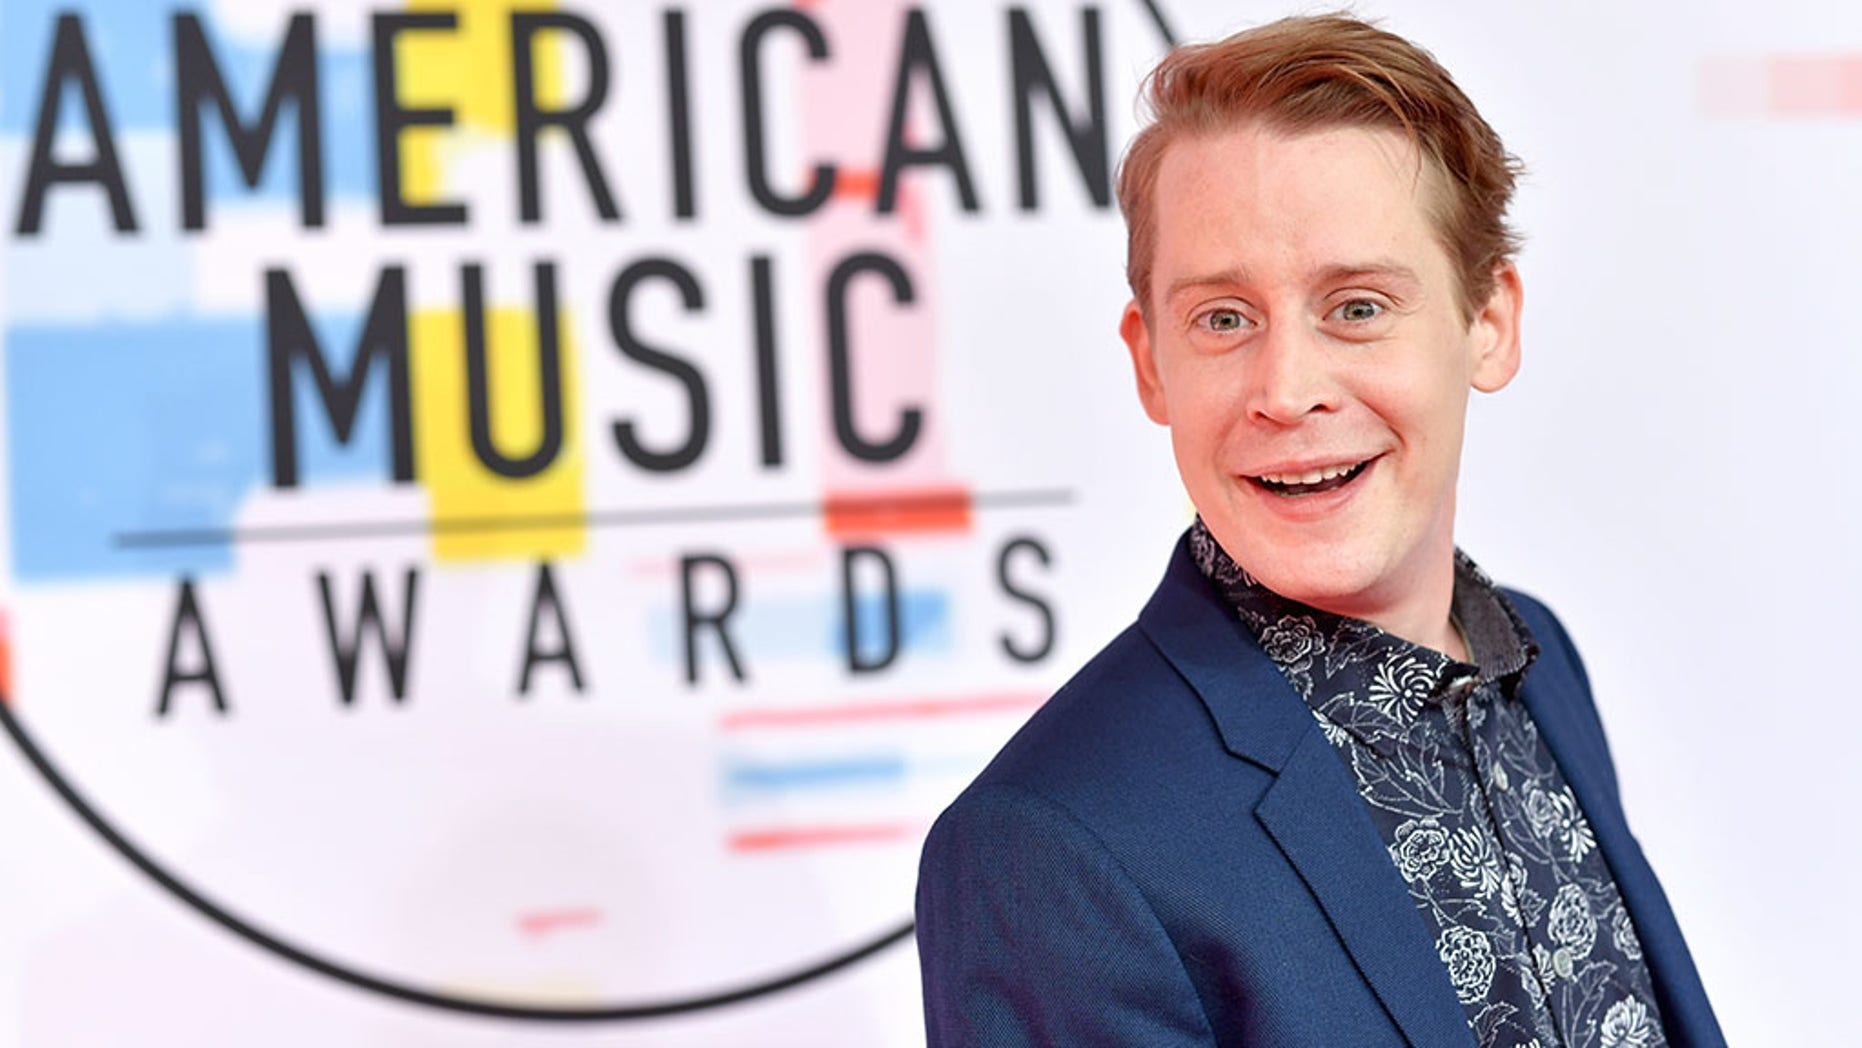 Home Alone Star Macaulay Culkin Changed His Middle Name To